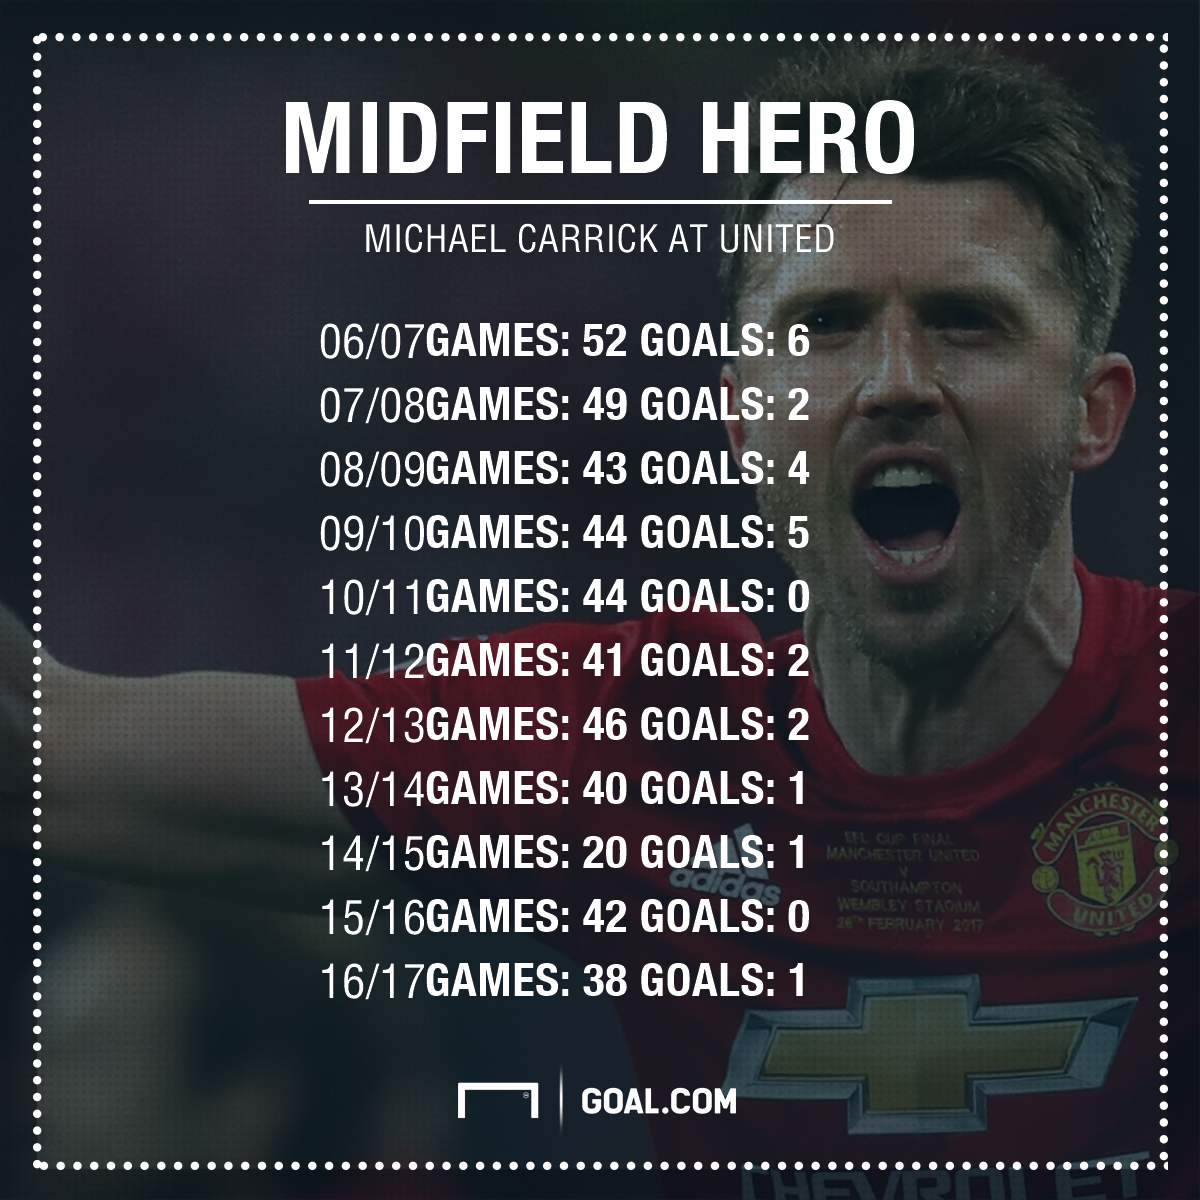 Michael Carrick Manchester United stats